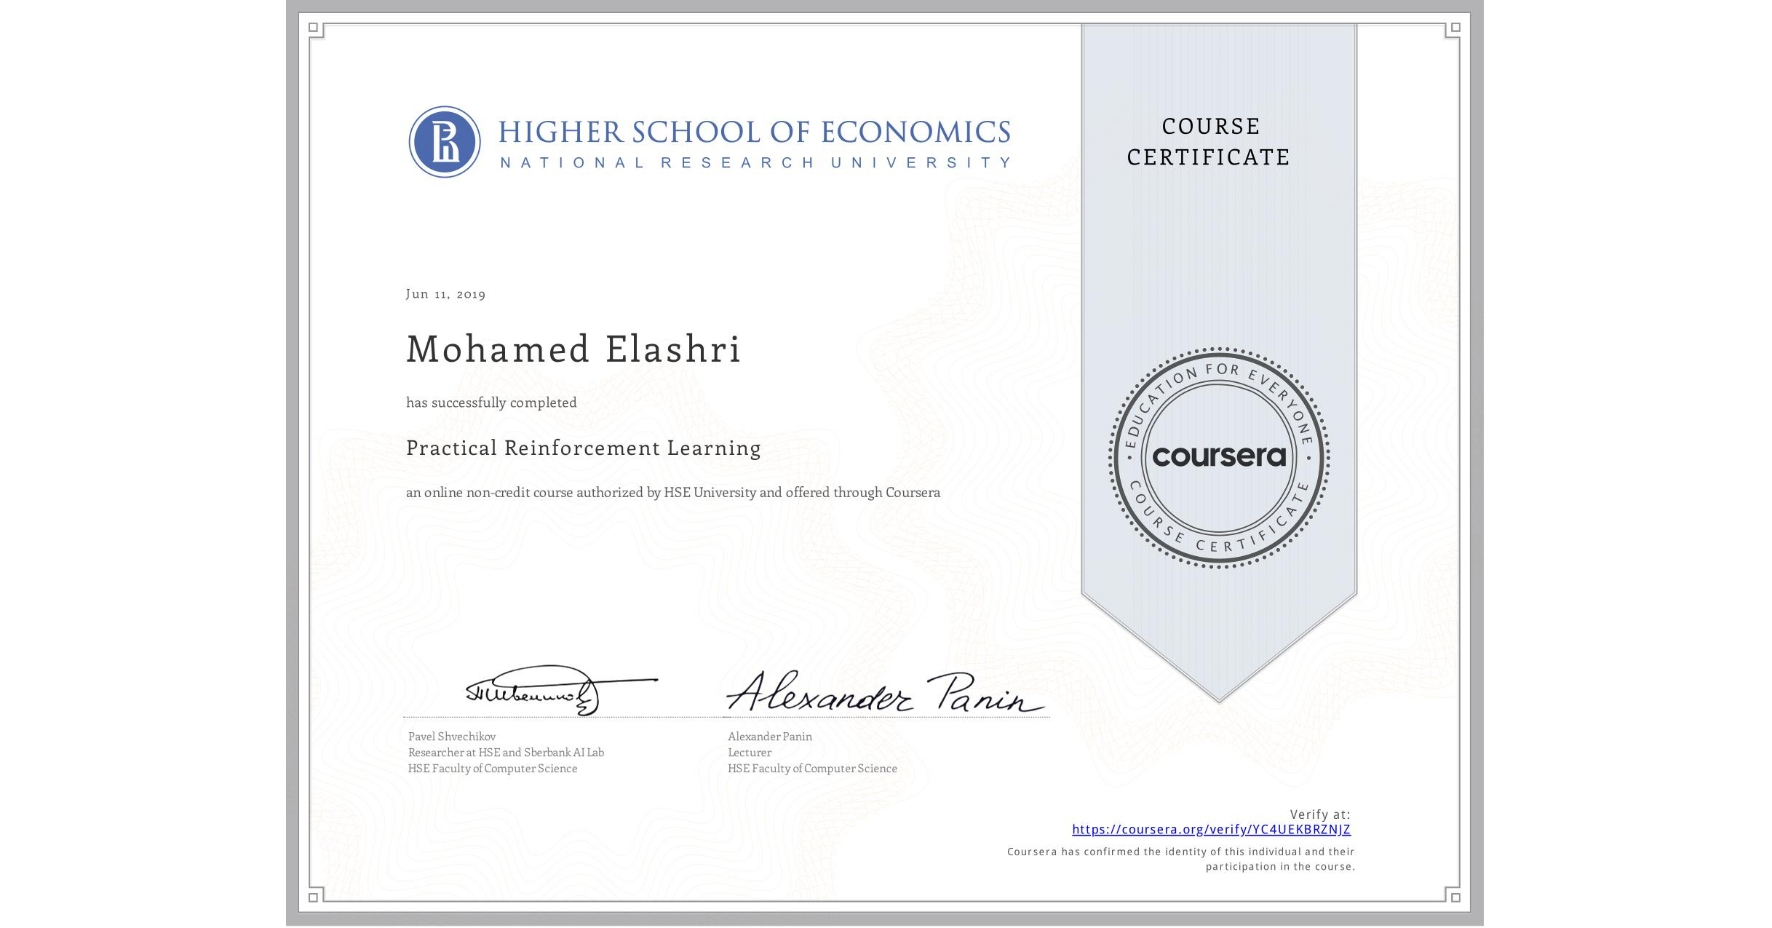 View certificate for Mohamed Elashri, Practical Reinforcement Learning, an online non-credit course authorized by HSE University and offered through Coursera